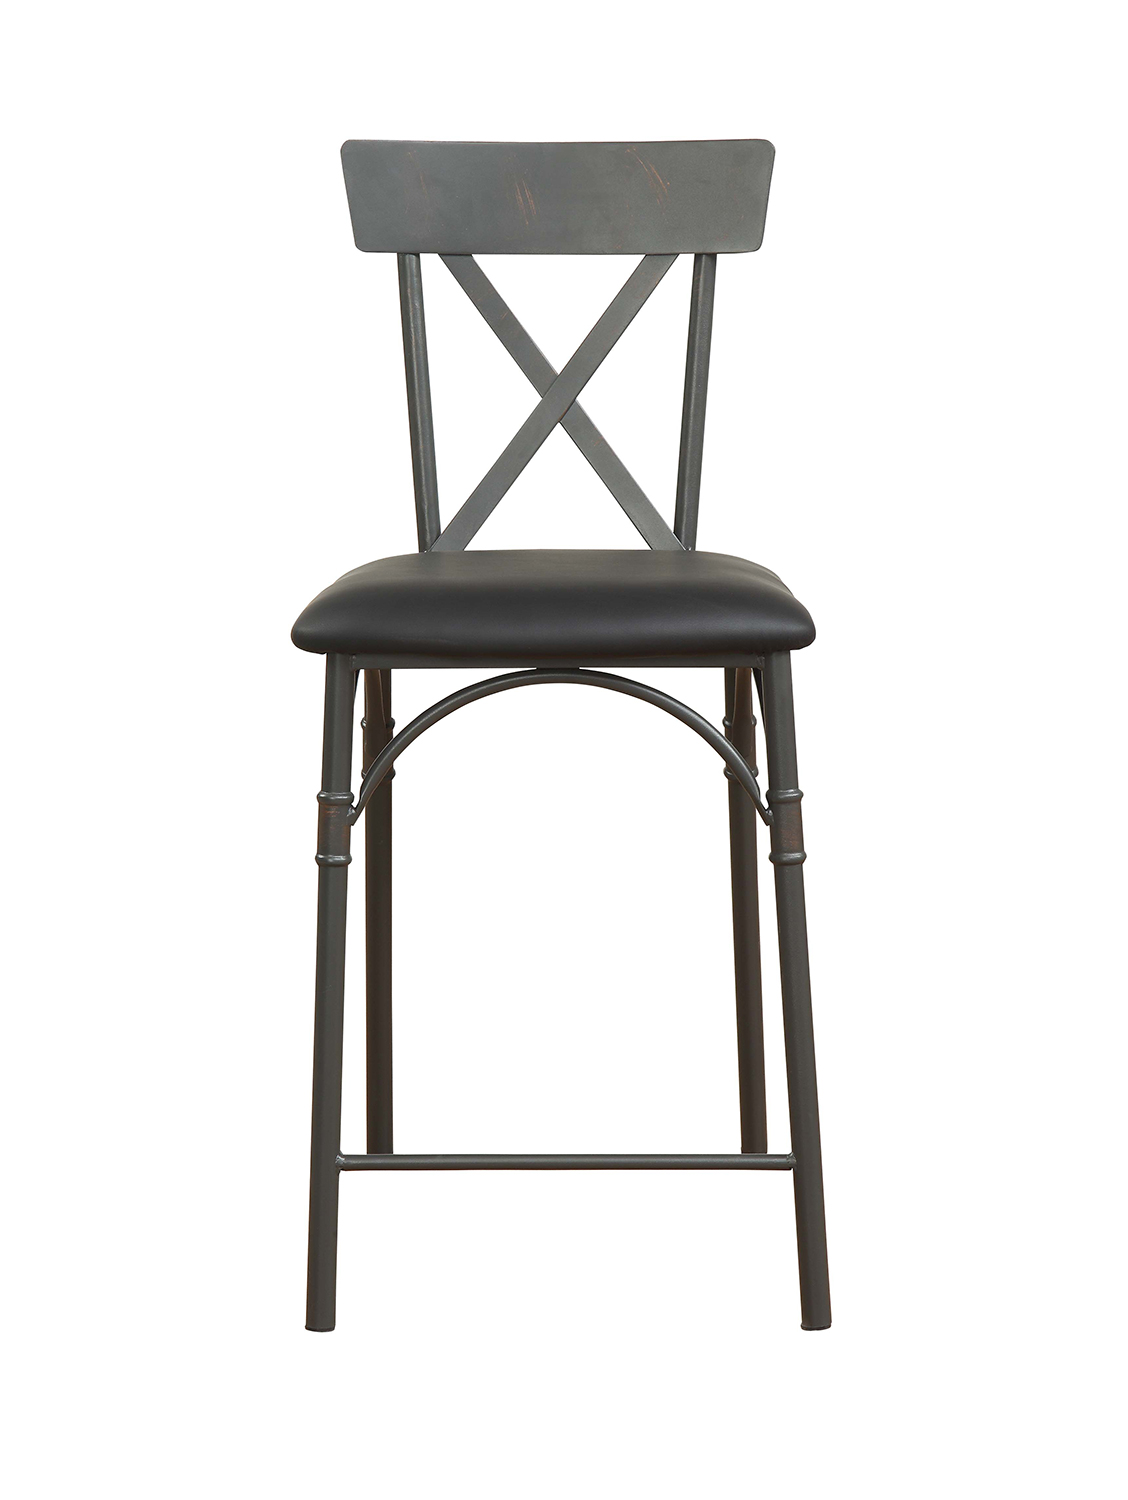 Acme Itzel Counter Height Chair - Black Vinyl/Sandy Gray